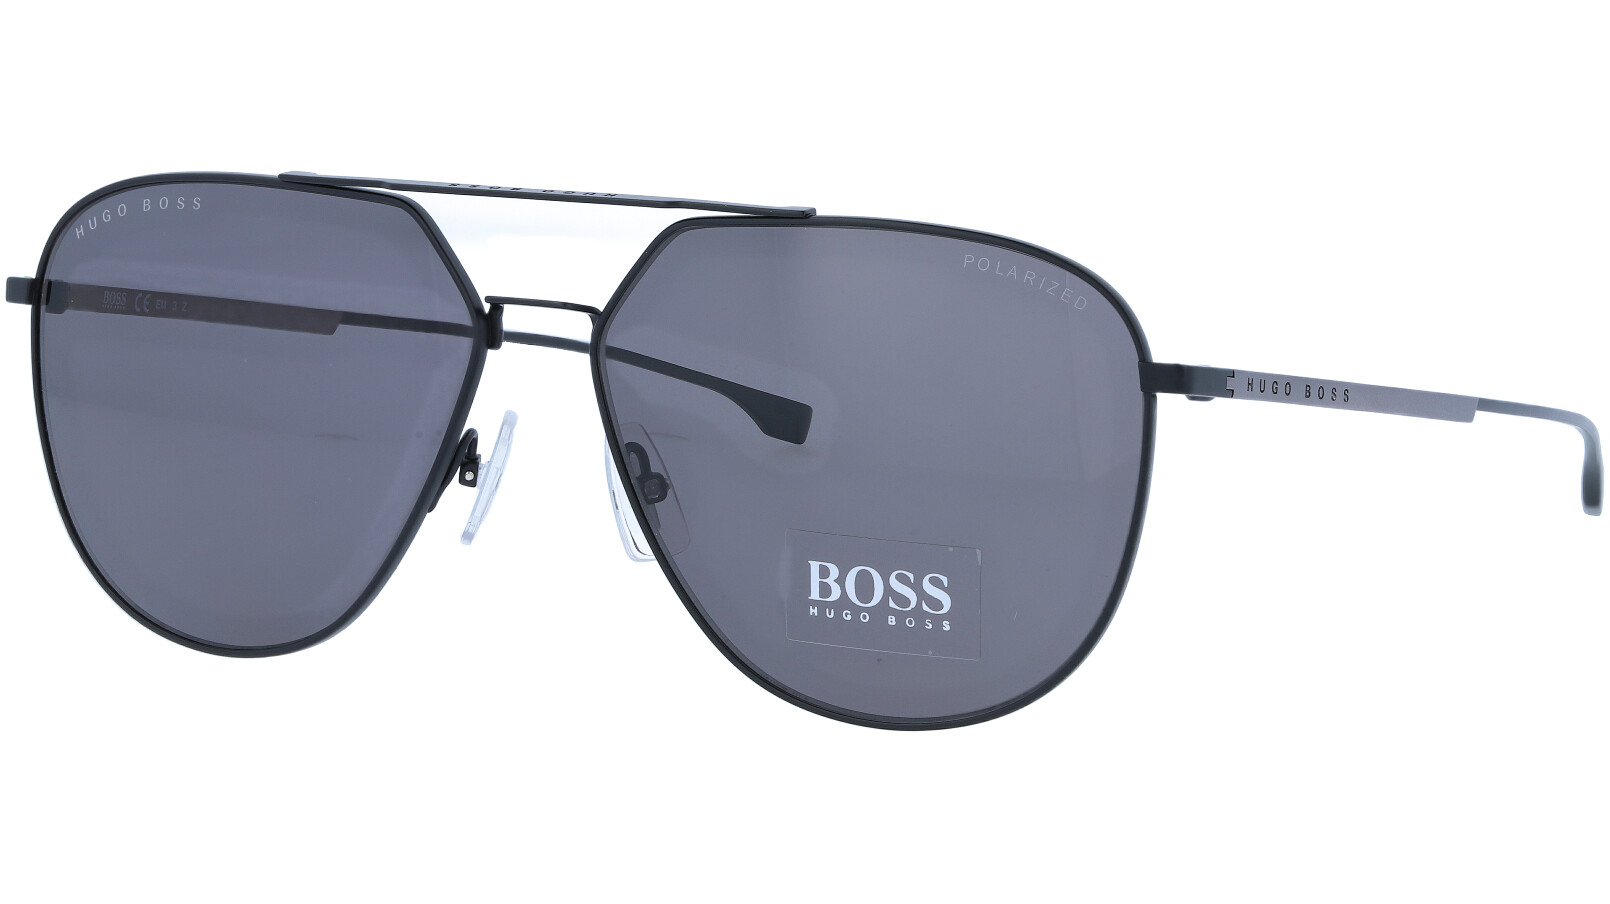 HUGO BOSS BOSS0994FS 003M9 63 MATT Sunglasses